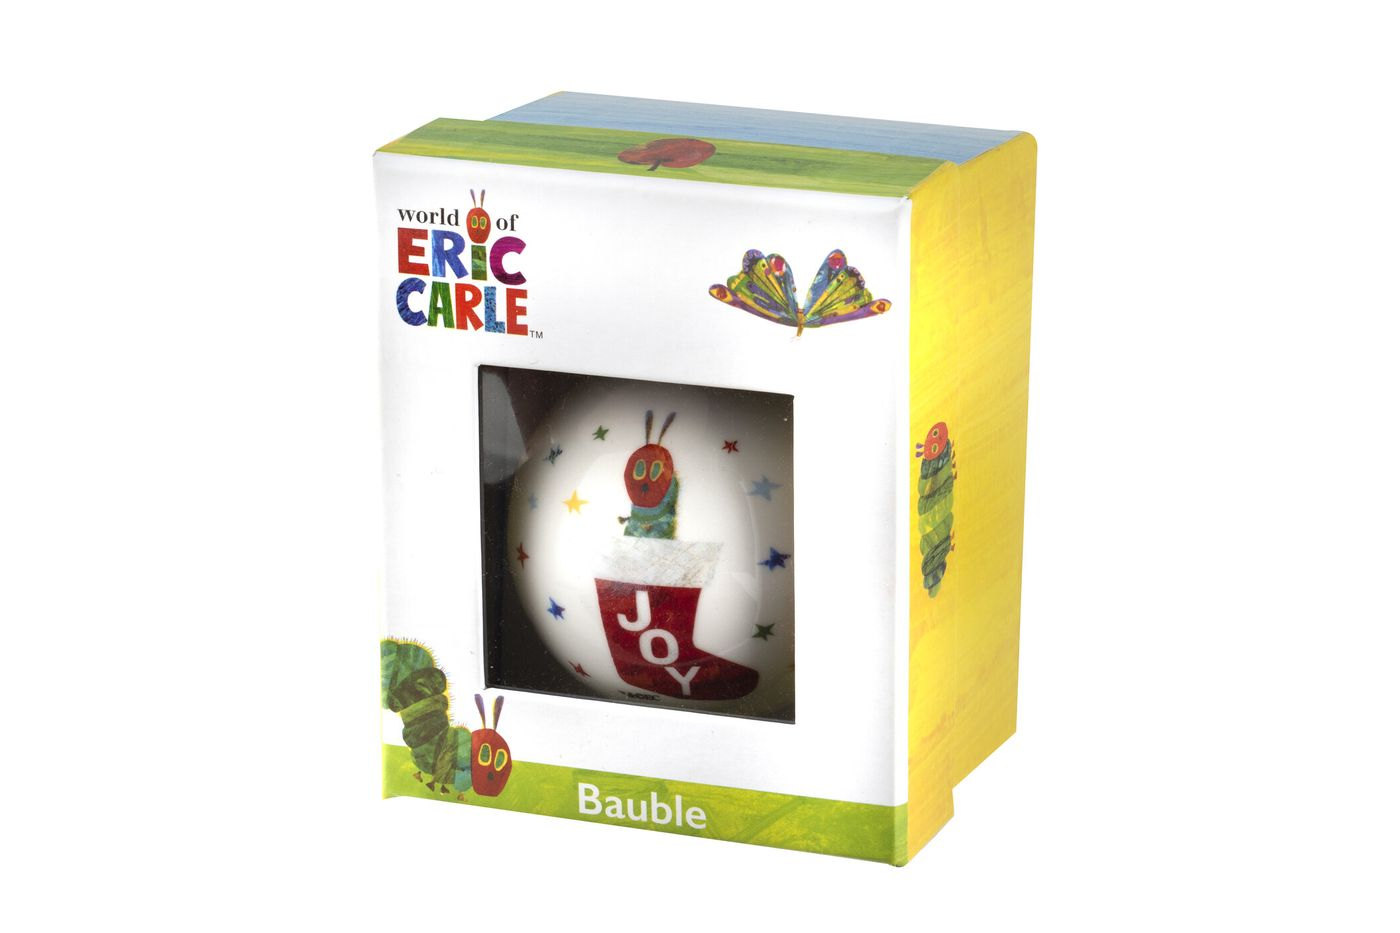 Portmeirion The Very Hungry Caterpillar by Eric Carle Bauble Joy thumb 2